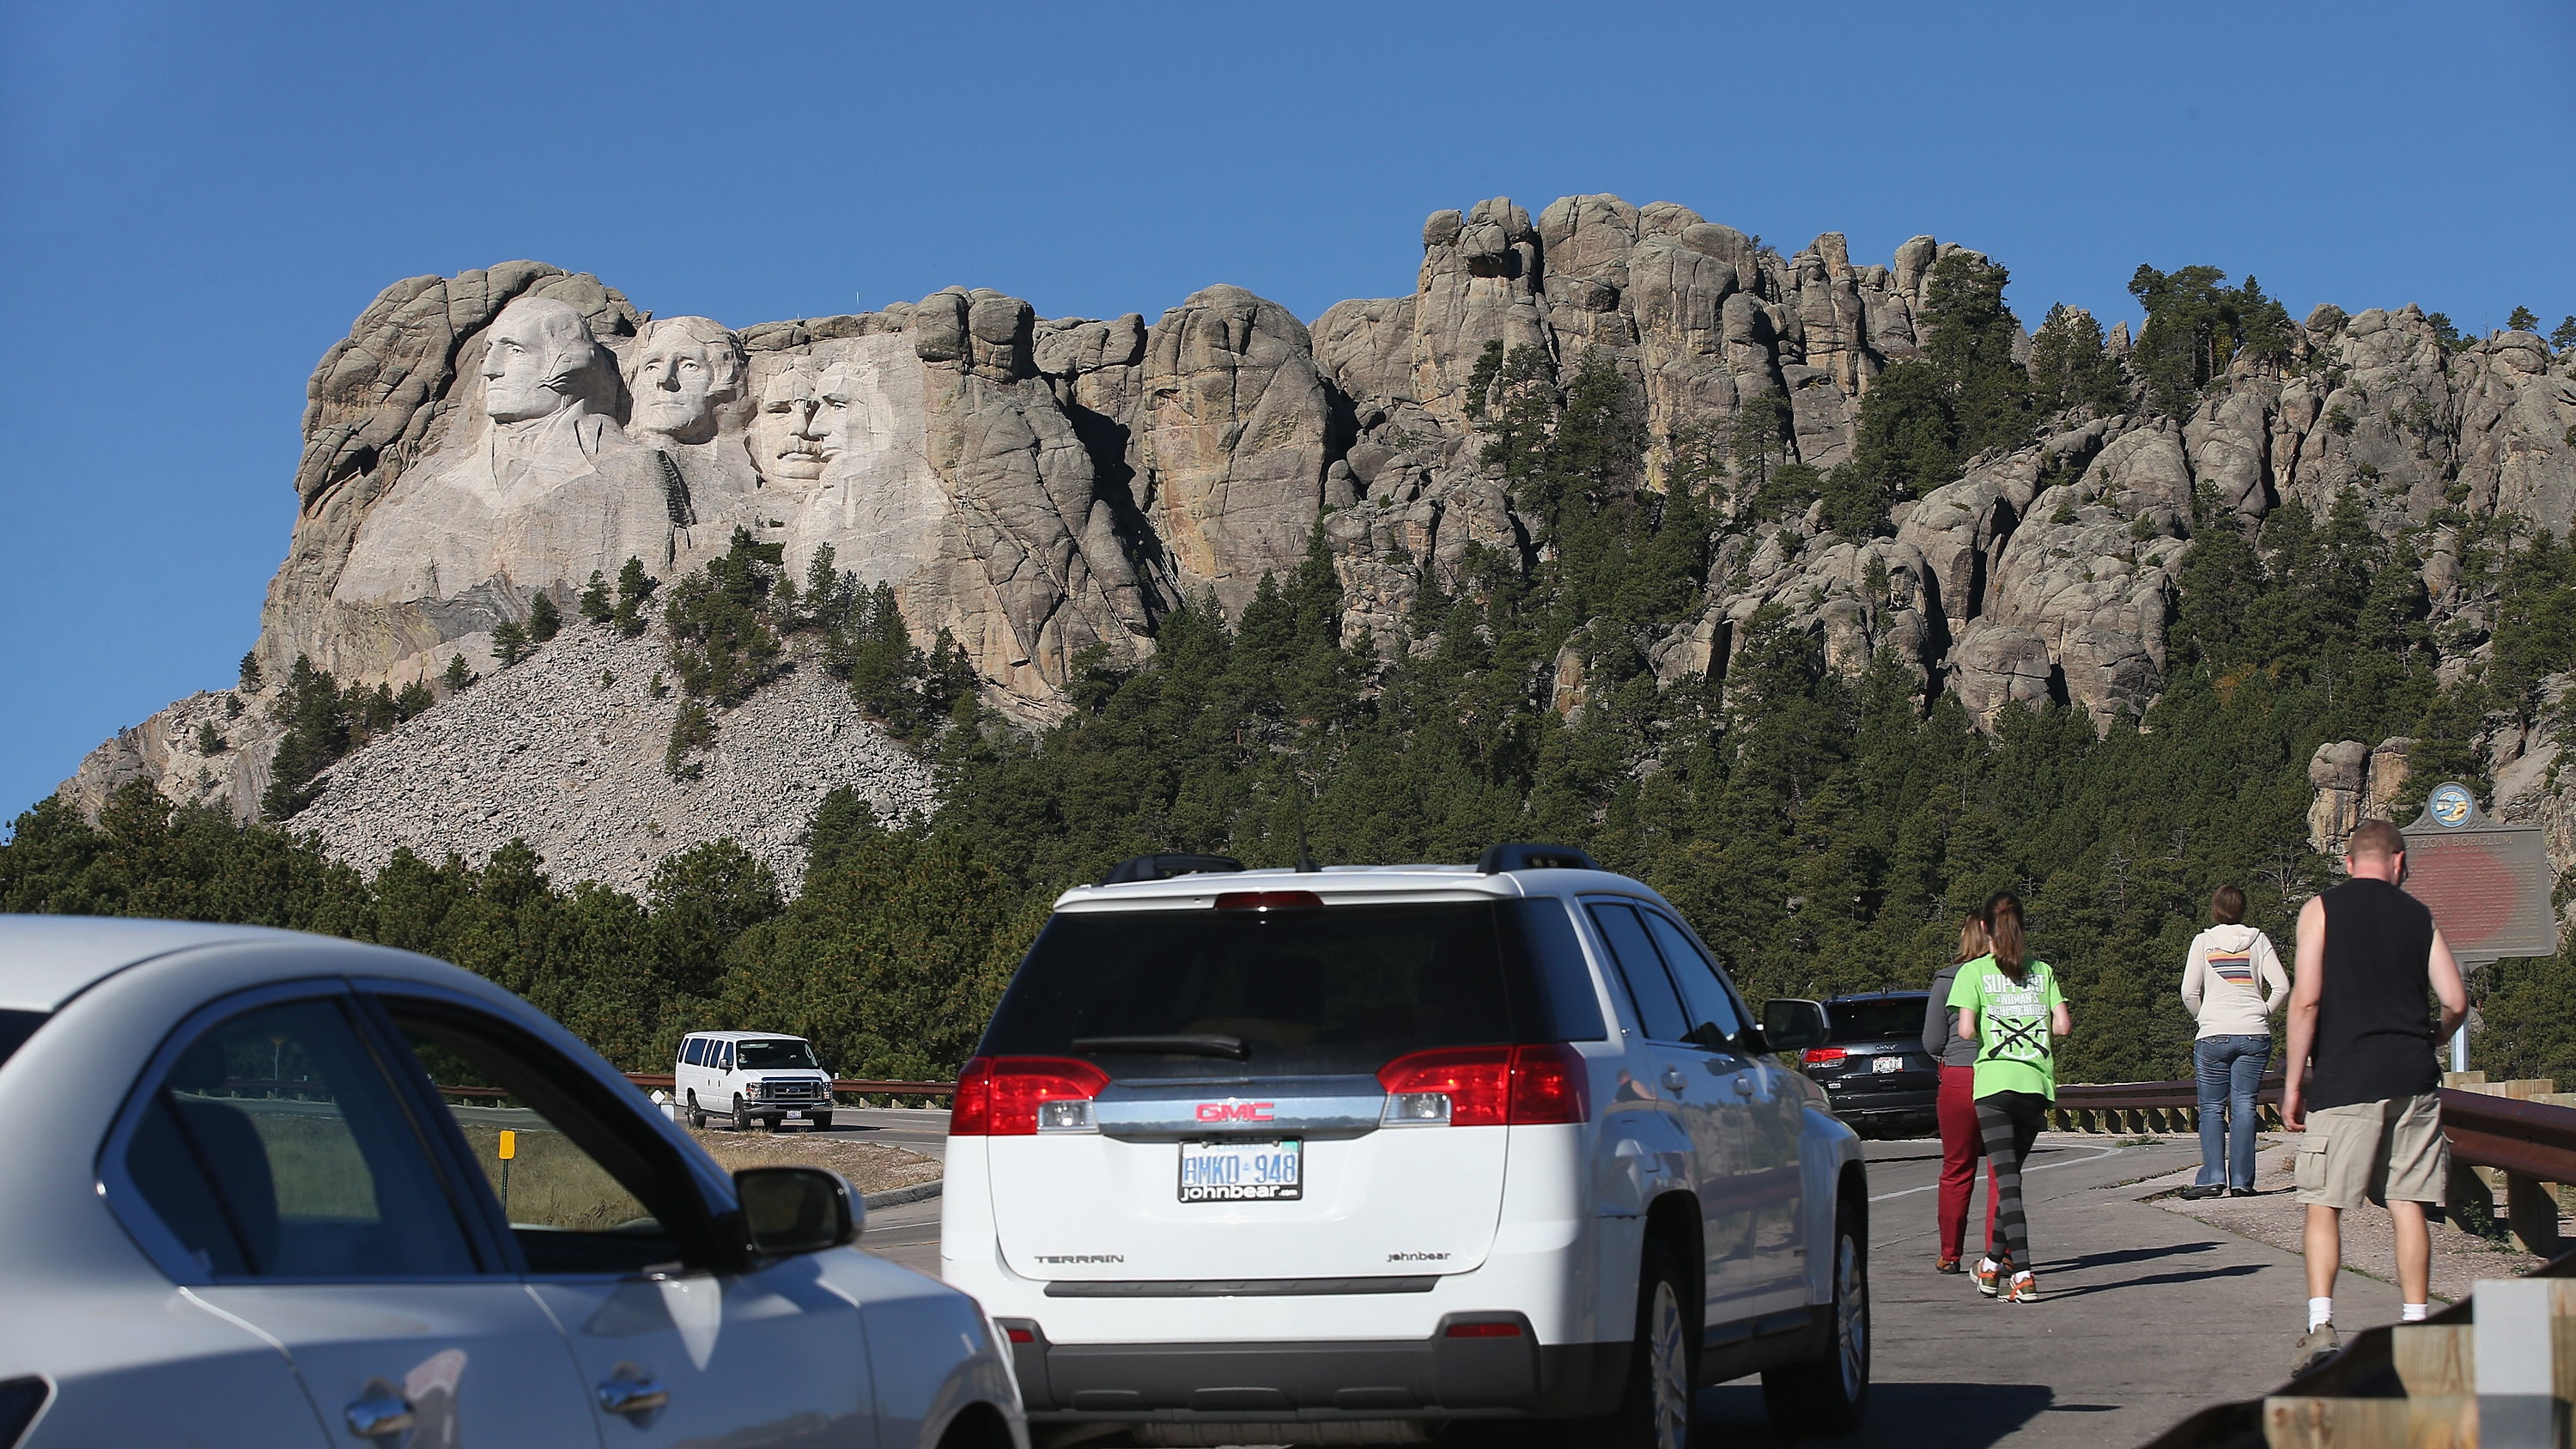 Yosemite's concessionaire hopeful hospitality services will remain open if shutdown occurs